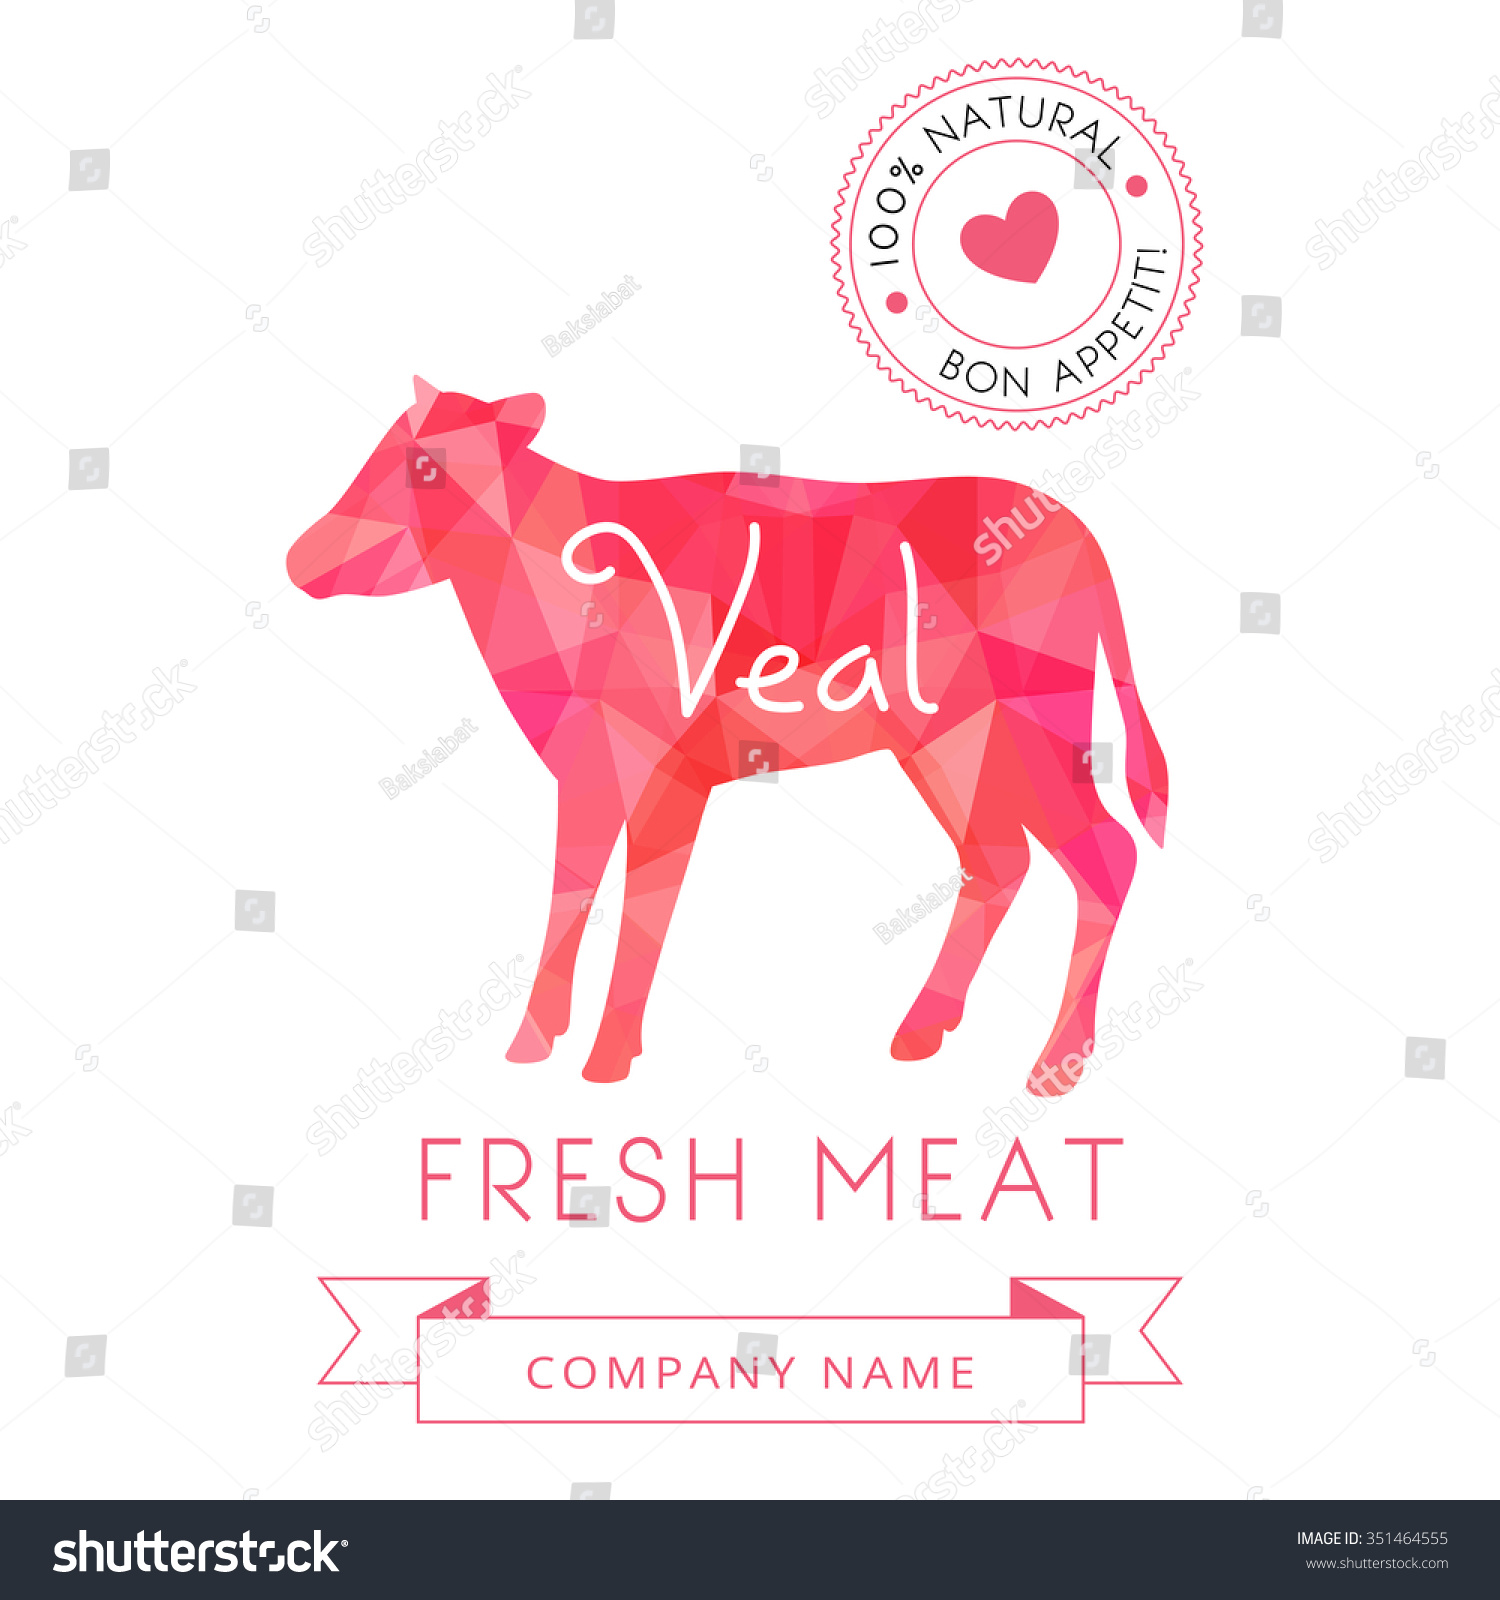 image meat symbol veal silhouettes animal stock vector